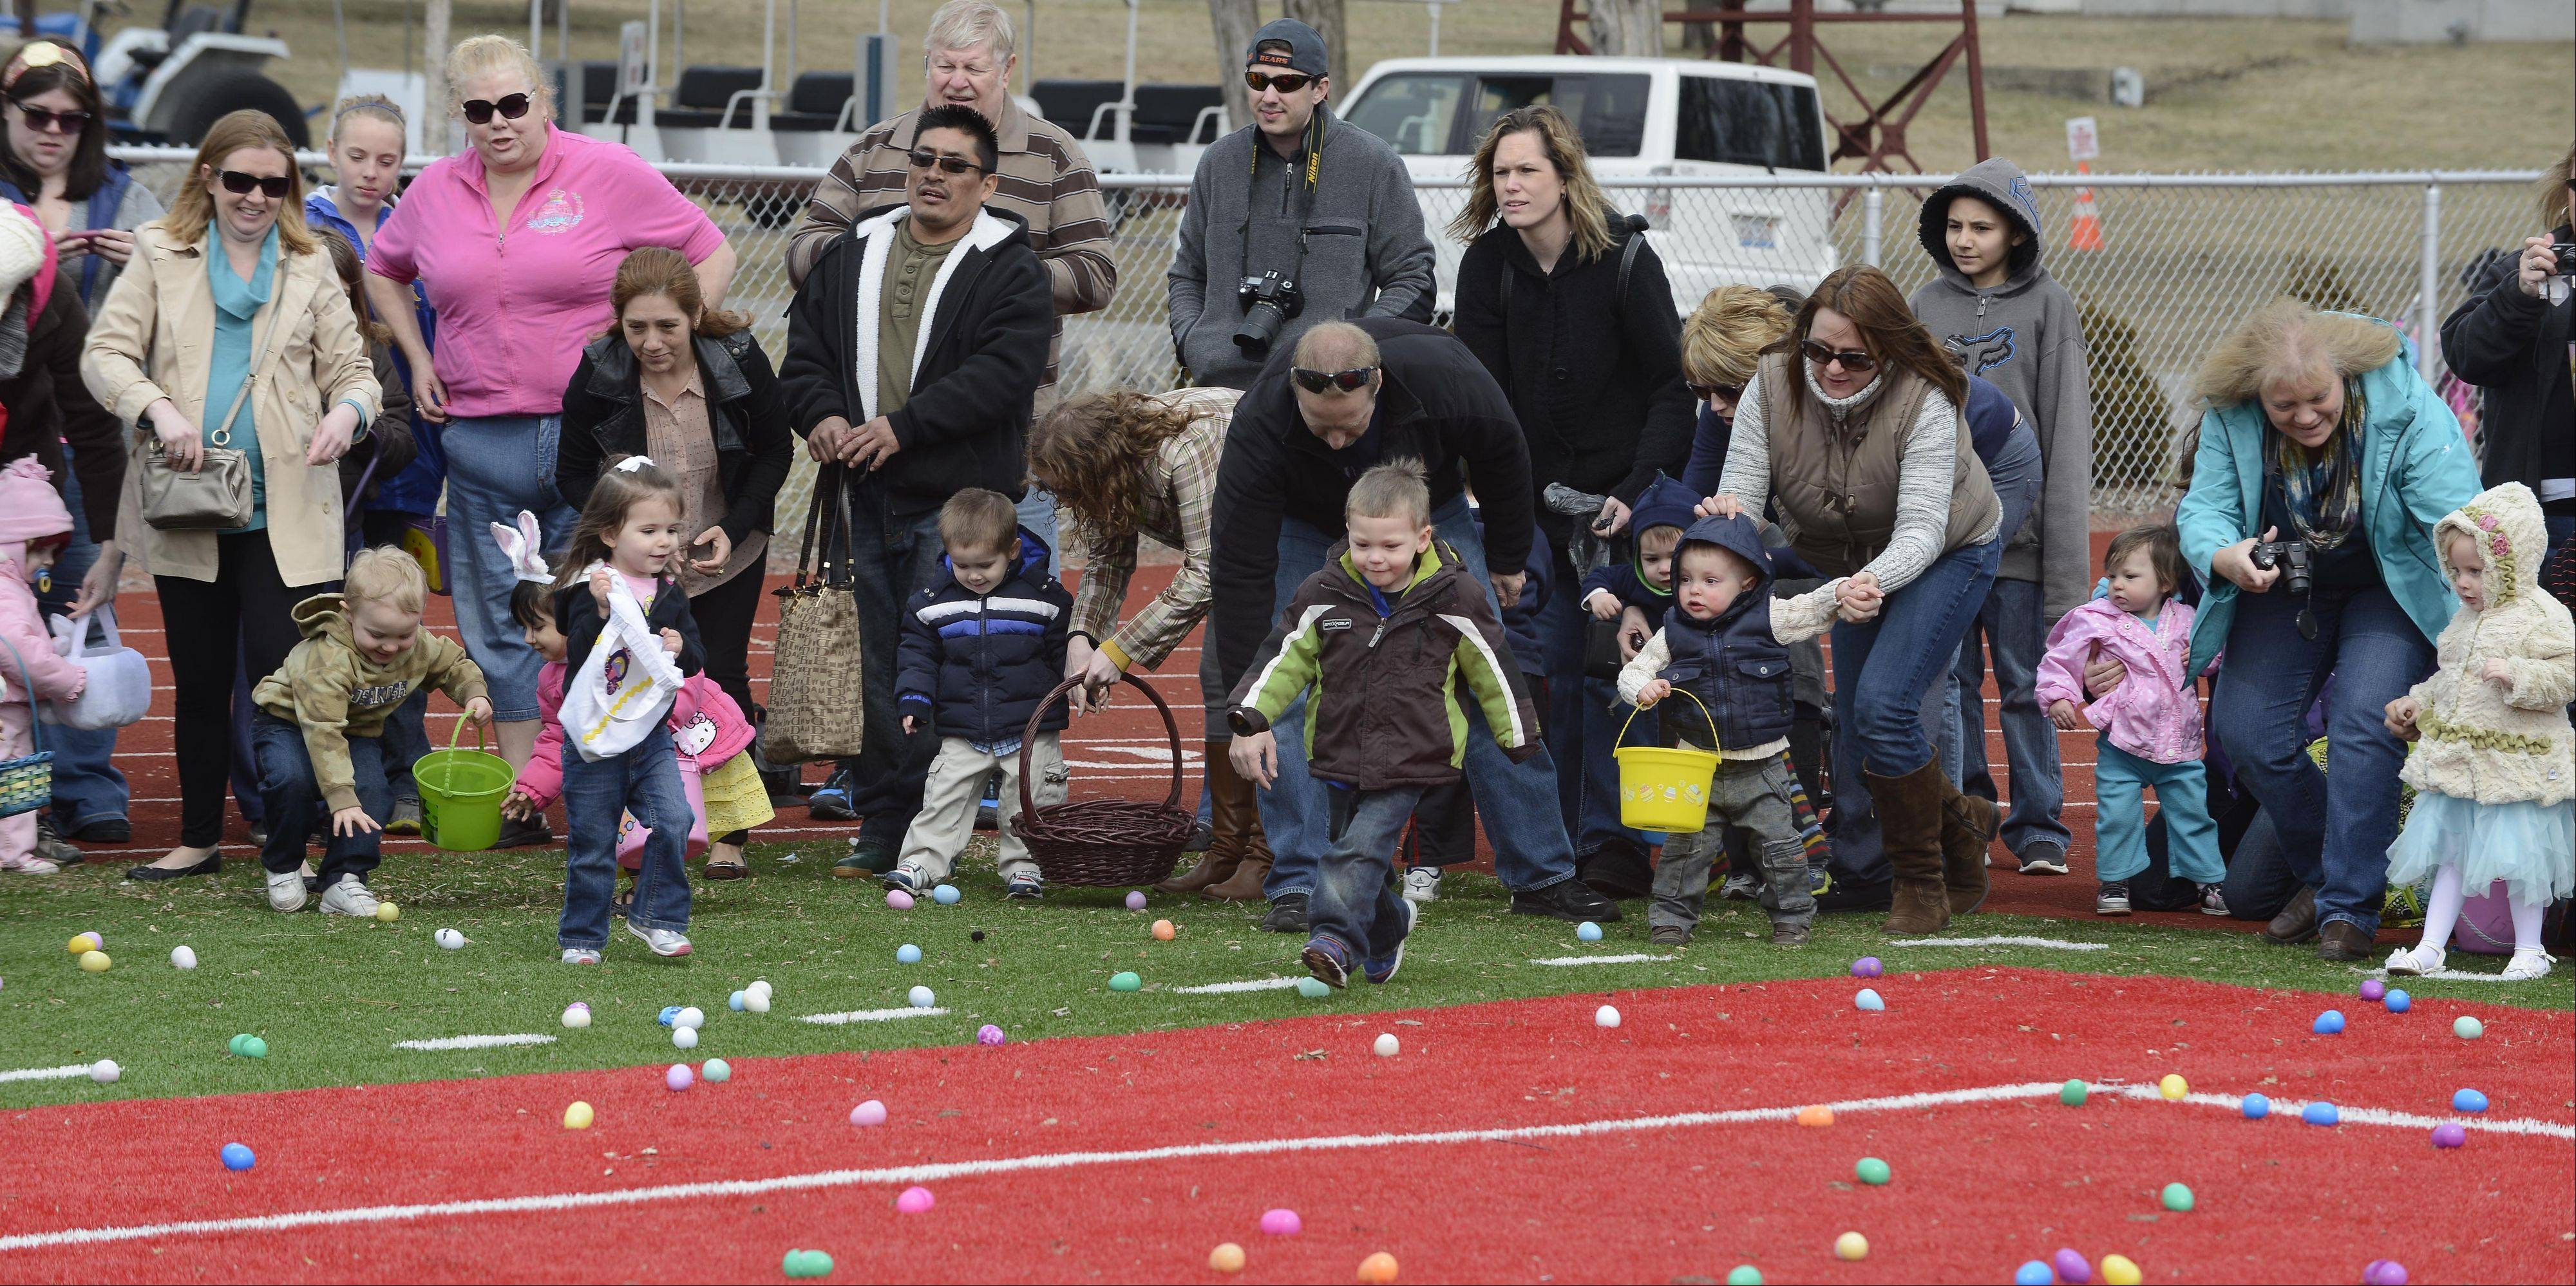 Children hurry to gather eggs during Saturday's Easter egg hunt at Mooseheart.